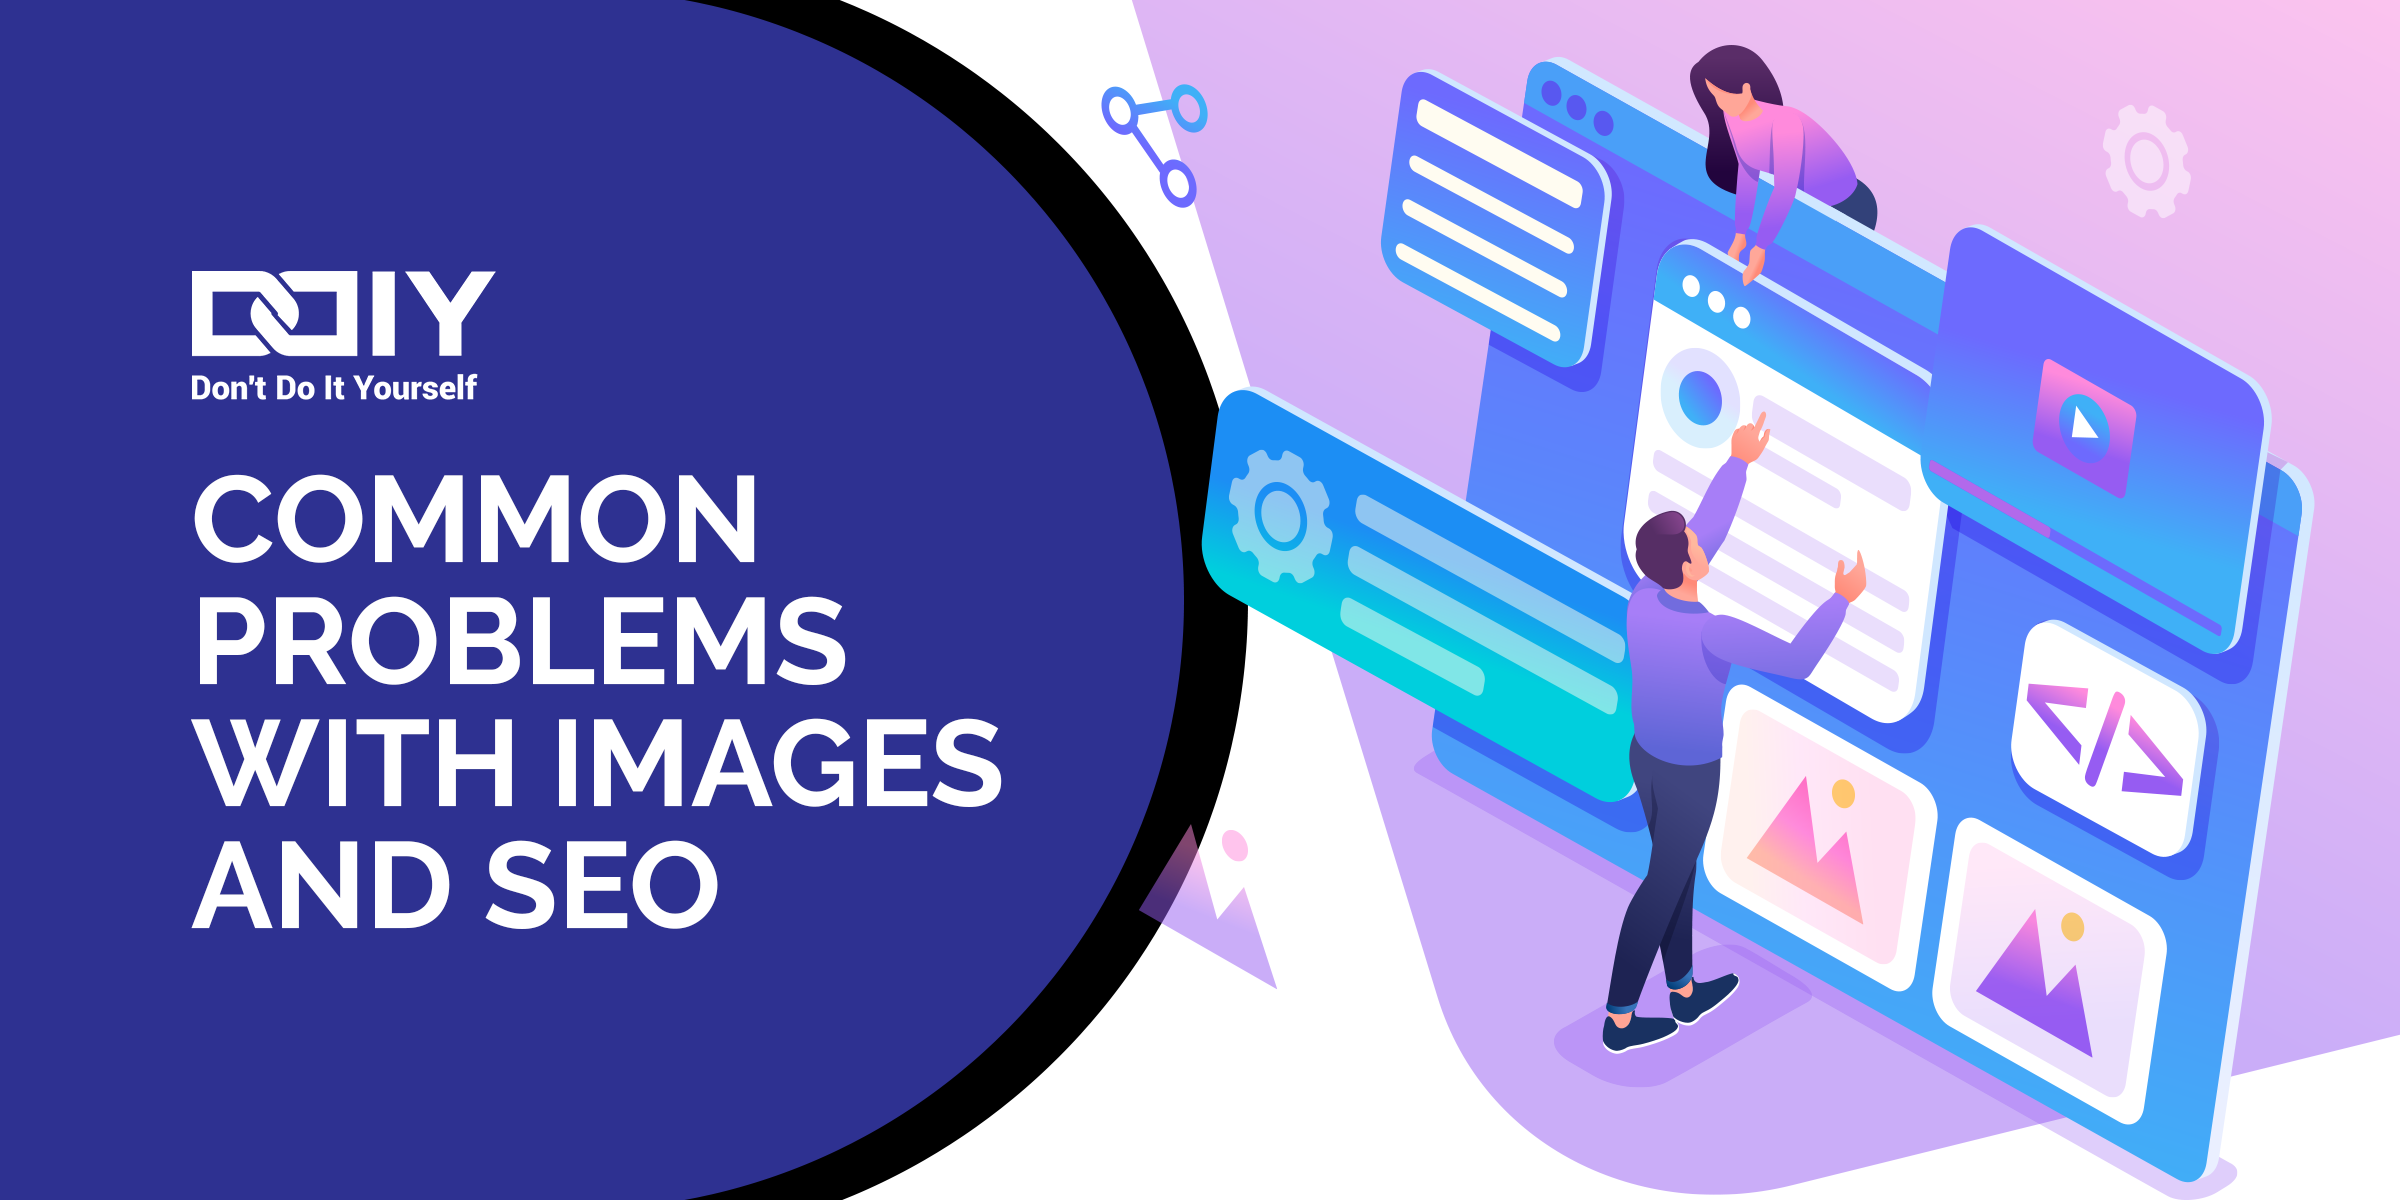 Common Problems With Images and SEO